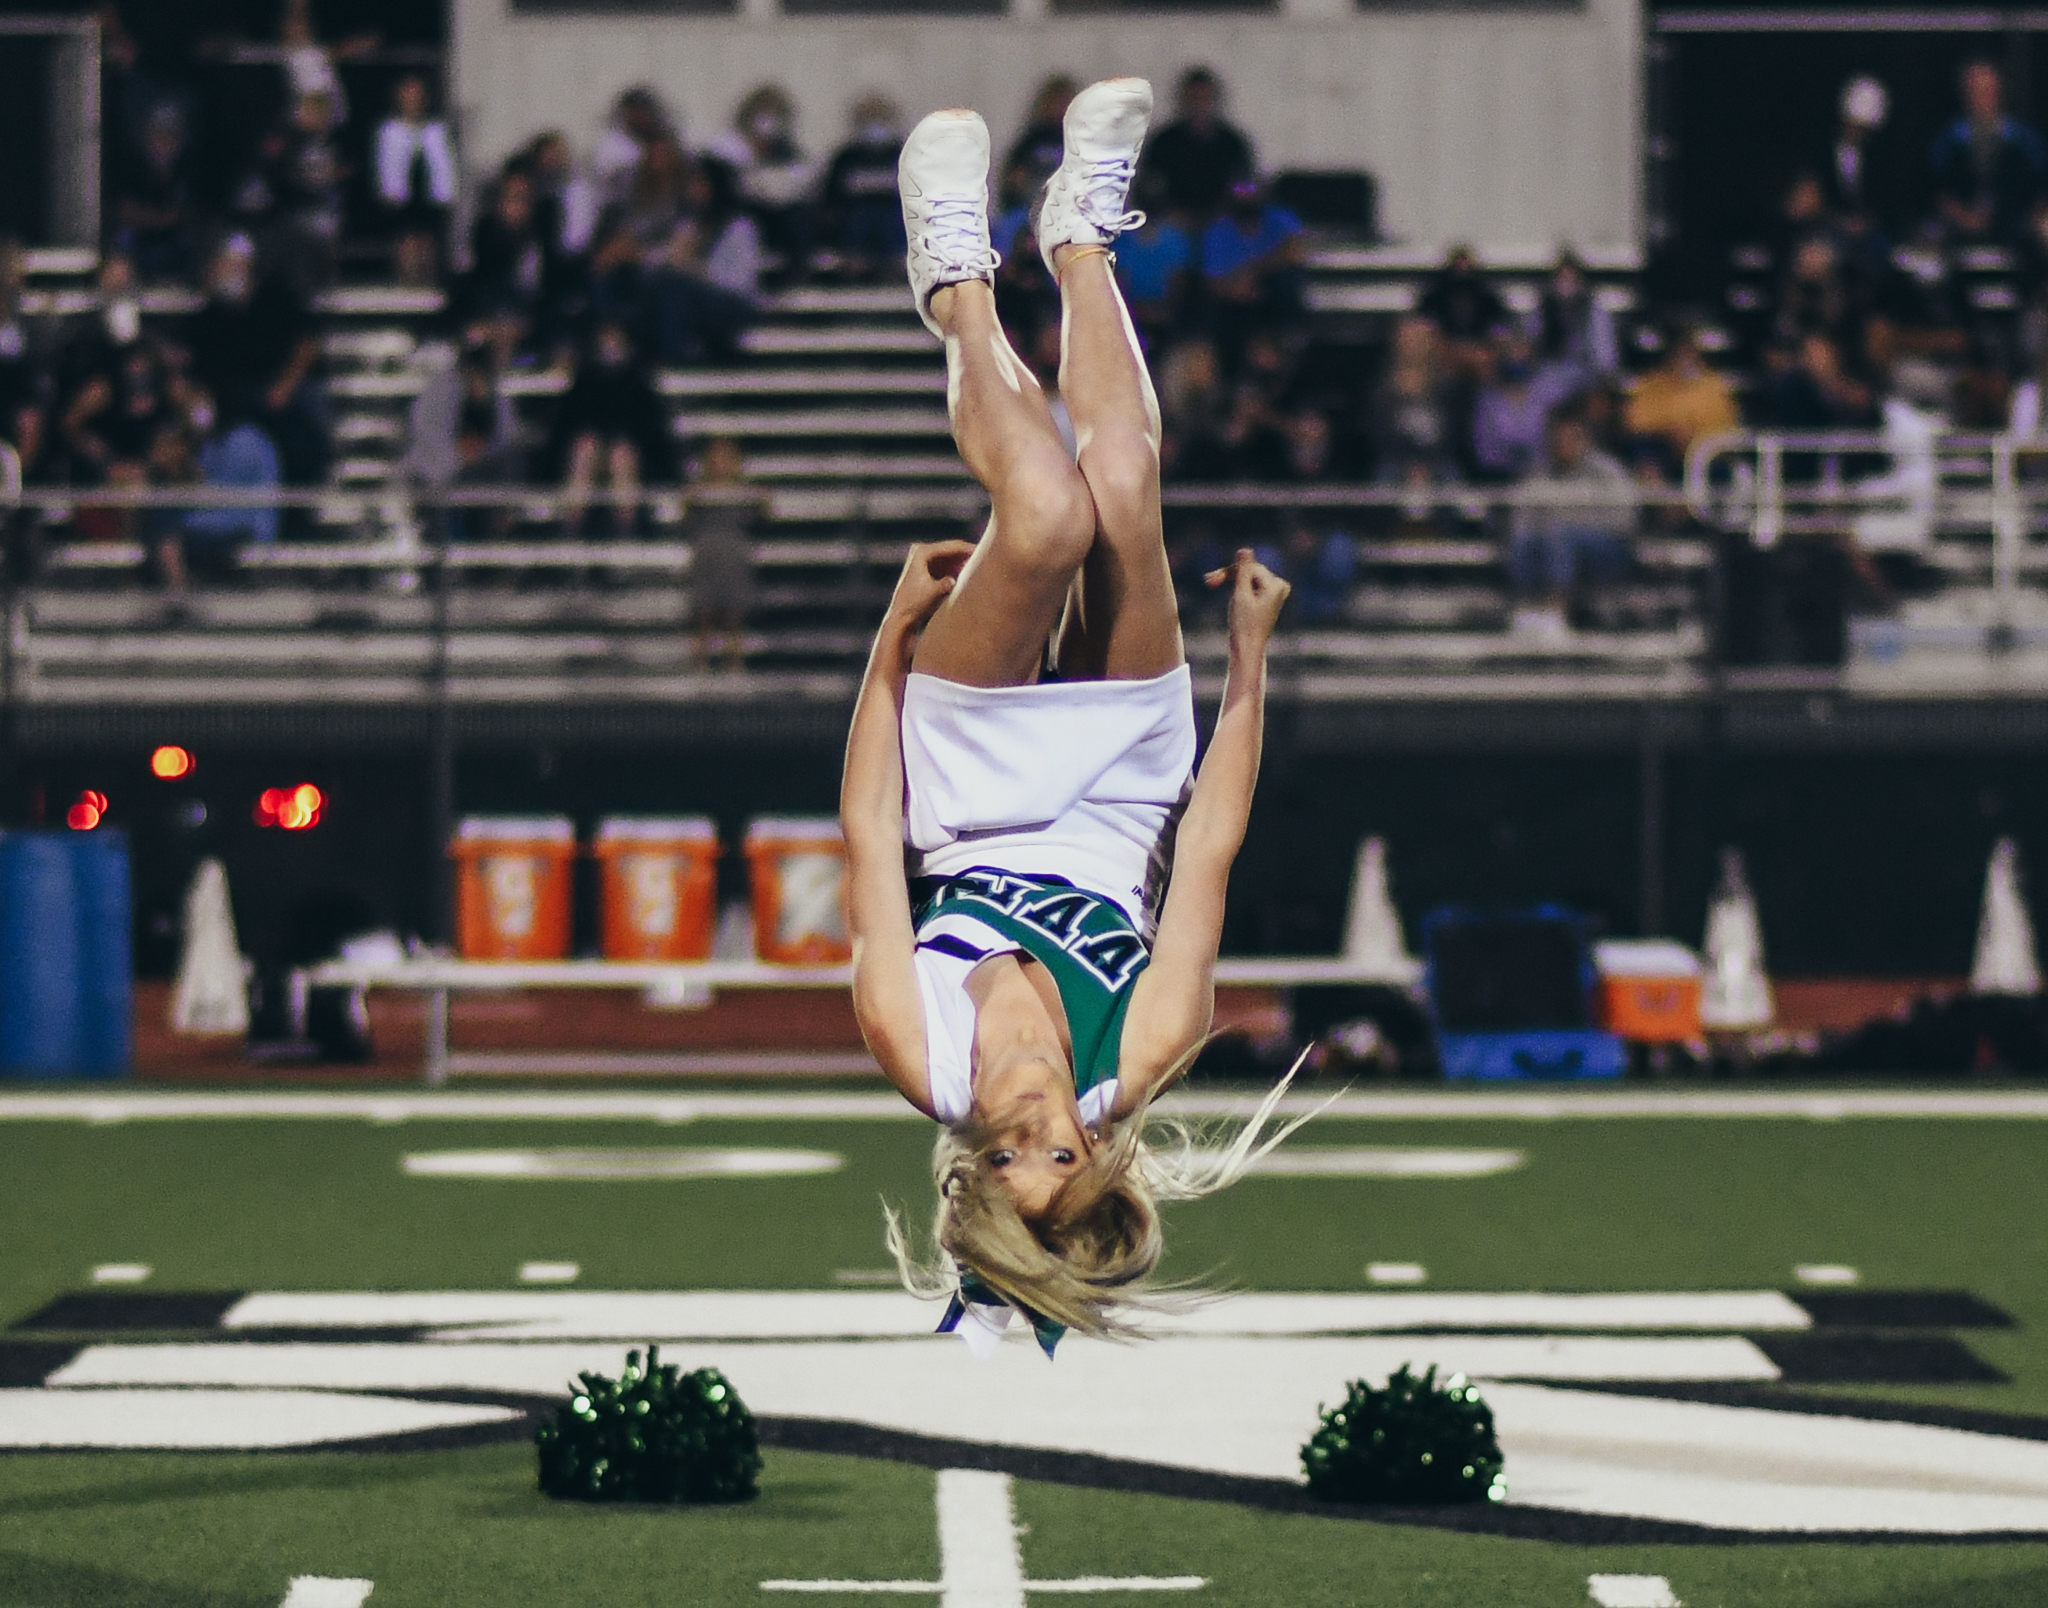 cheerleader flipping